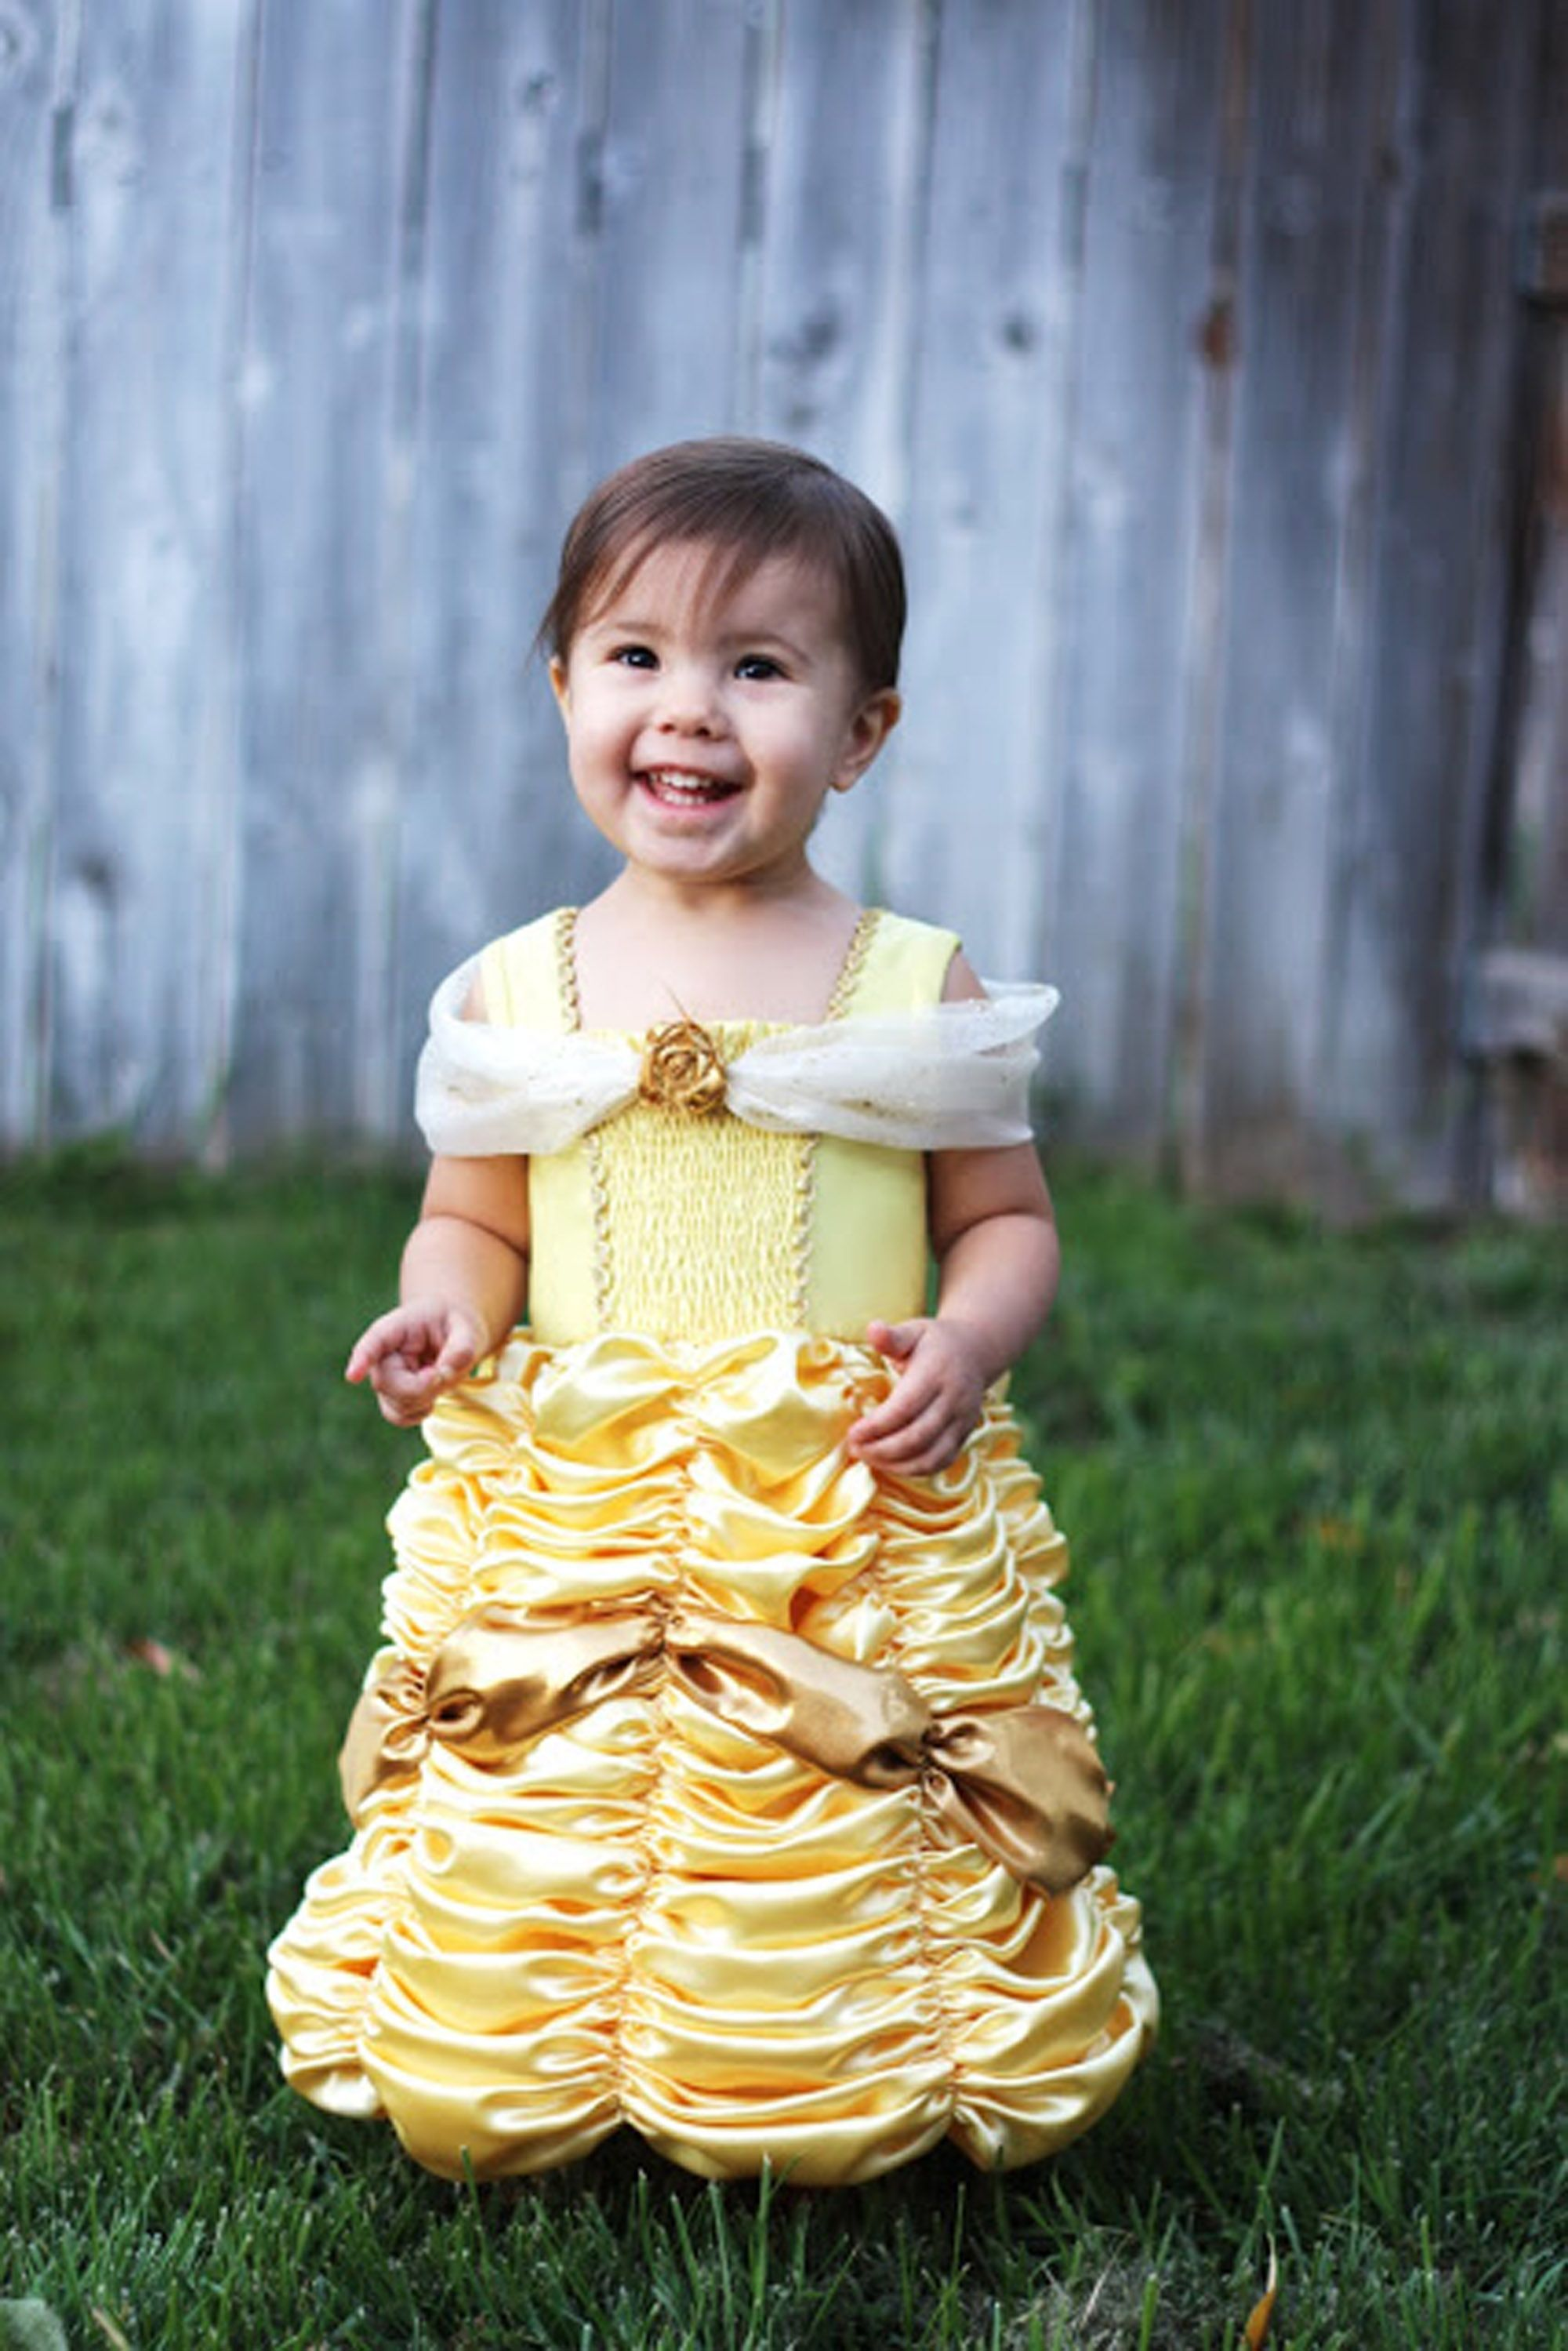 37 DIY Disney Princess Costumes - Homemade Princess Dresses for Kids